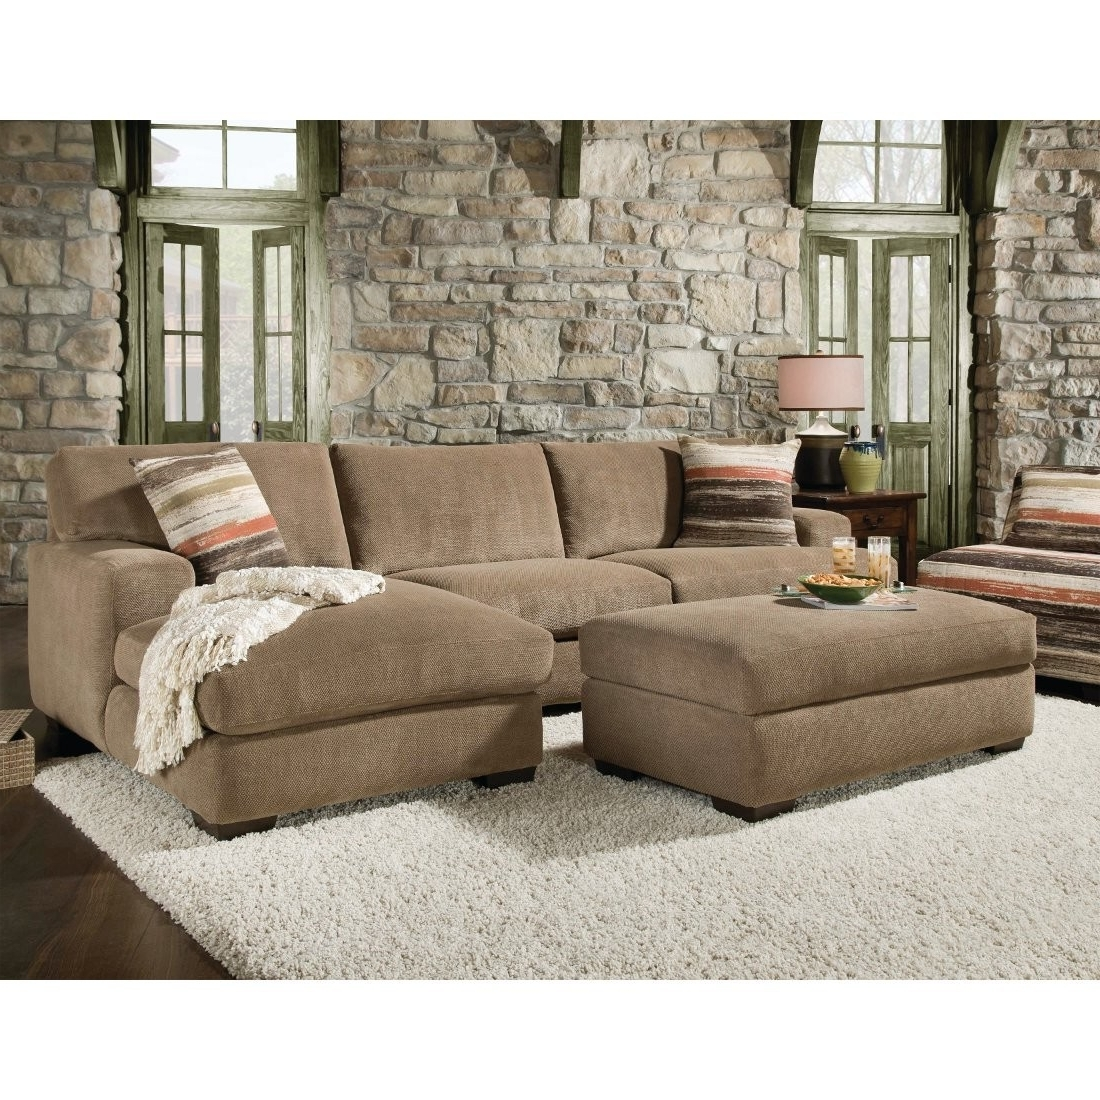 2019 Beautiful Sectional Sofa With Chaise And Ottoman Pictures In Sectional Couches With Large Ottoman (View 17 of 20)